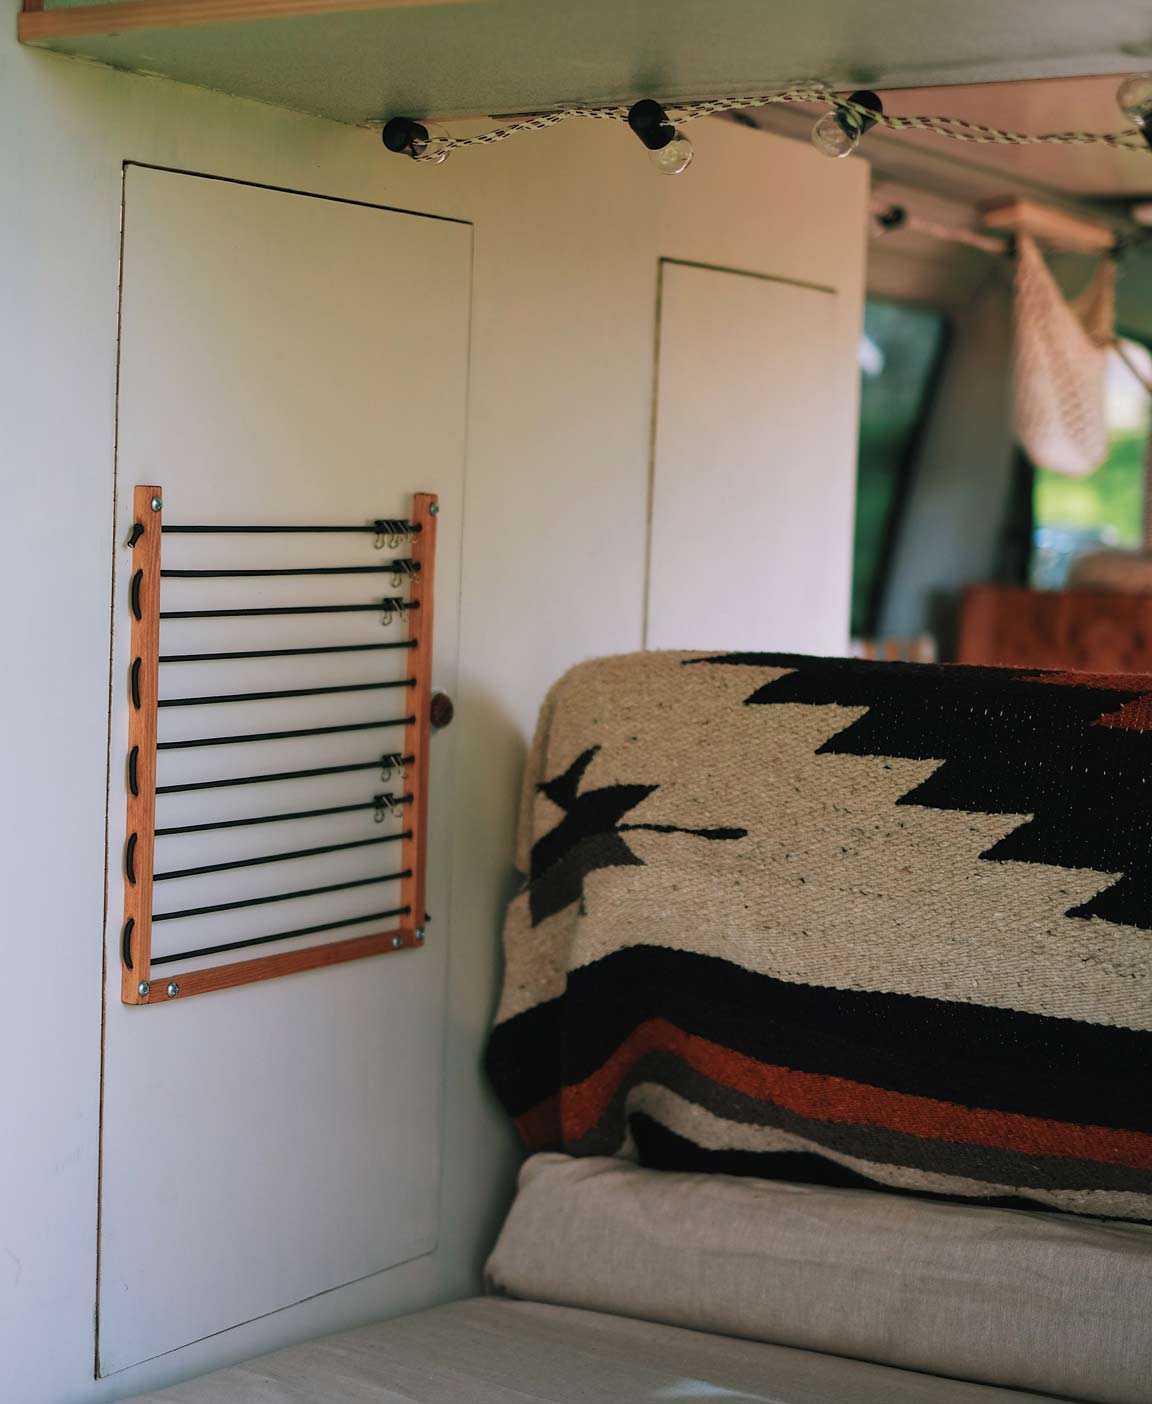 vw t4 camper ausbau der erfahrungsbericht von pinepins. Black Bedroom Furniture Sets. Home Design Ideas